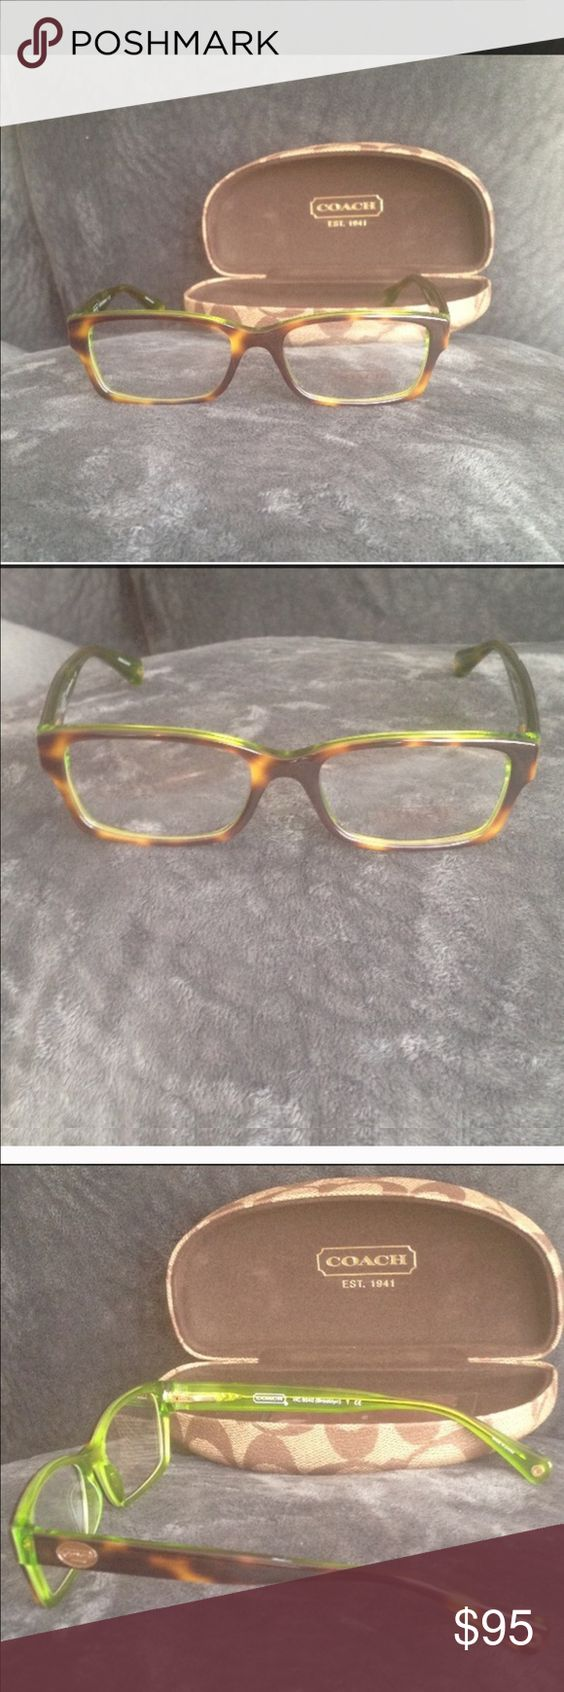 Coach glasses Pretty Coach frames. These have never been used. They have the testing lenses in them. Size 50 16 135 Coach Accessories Glasses